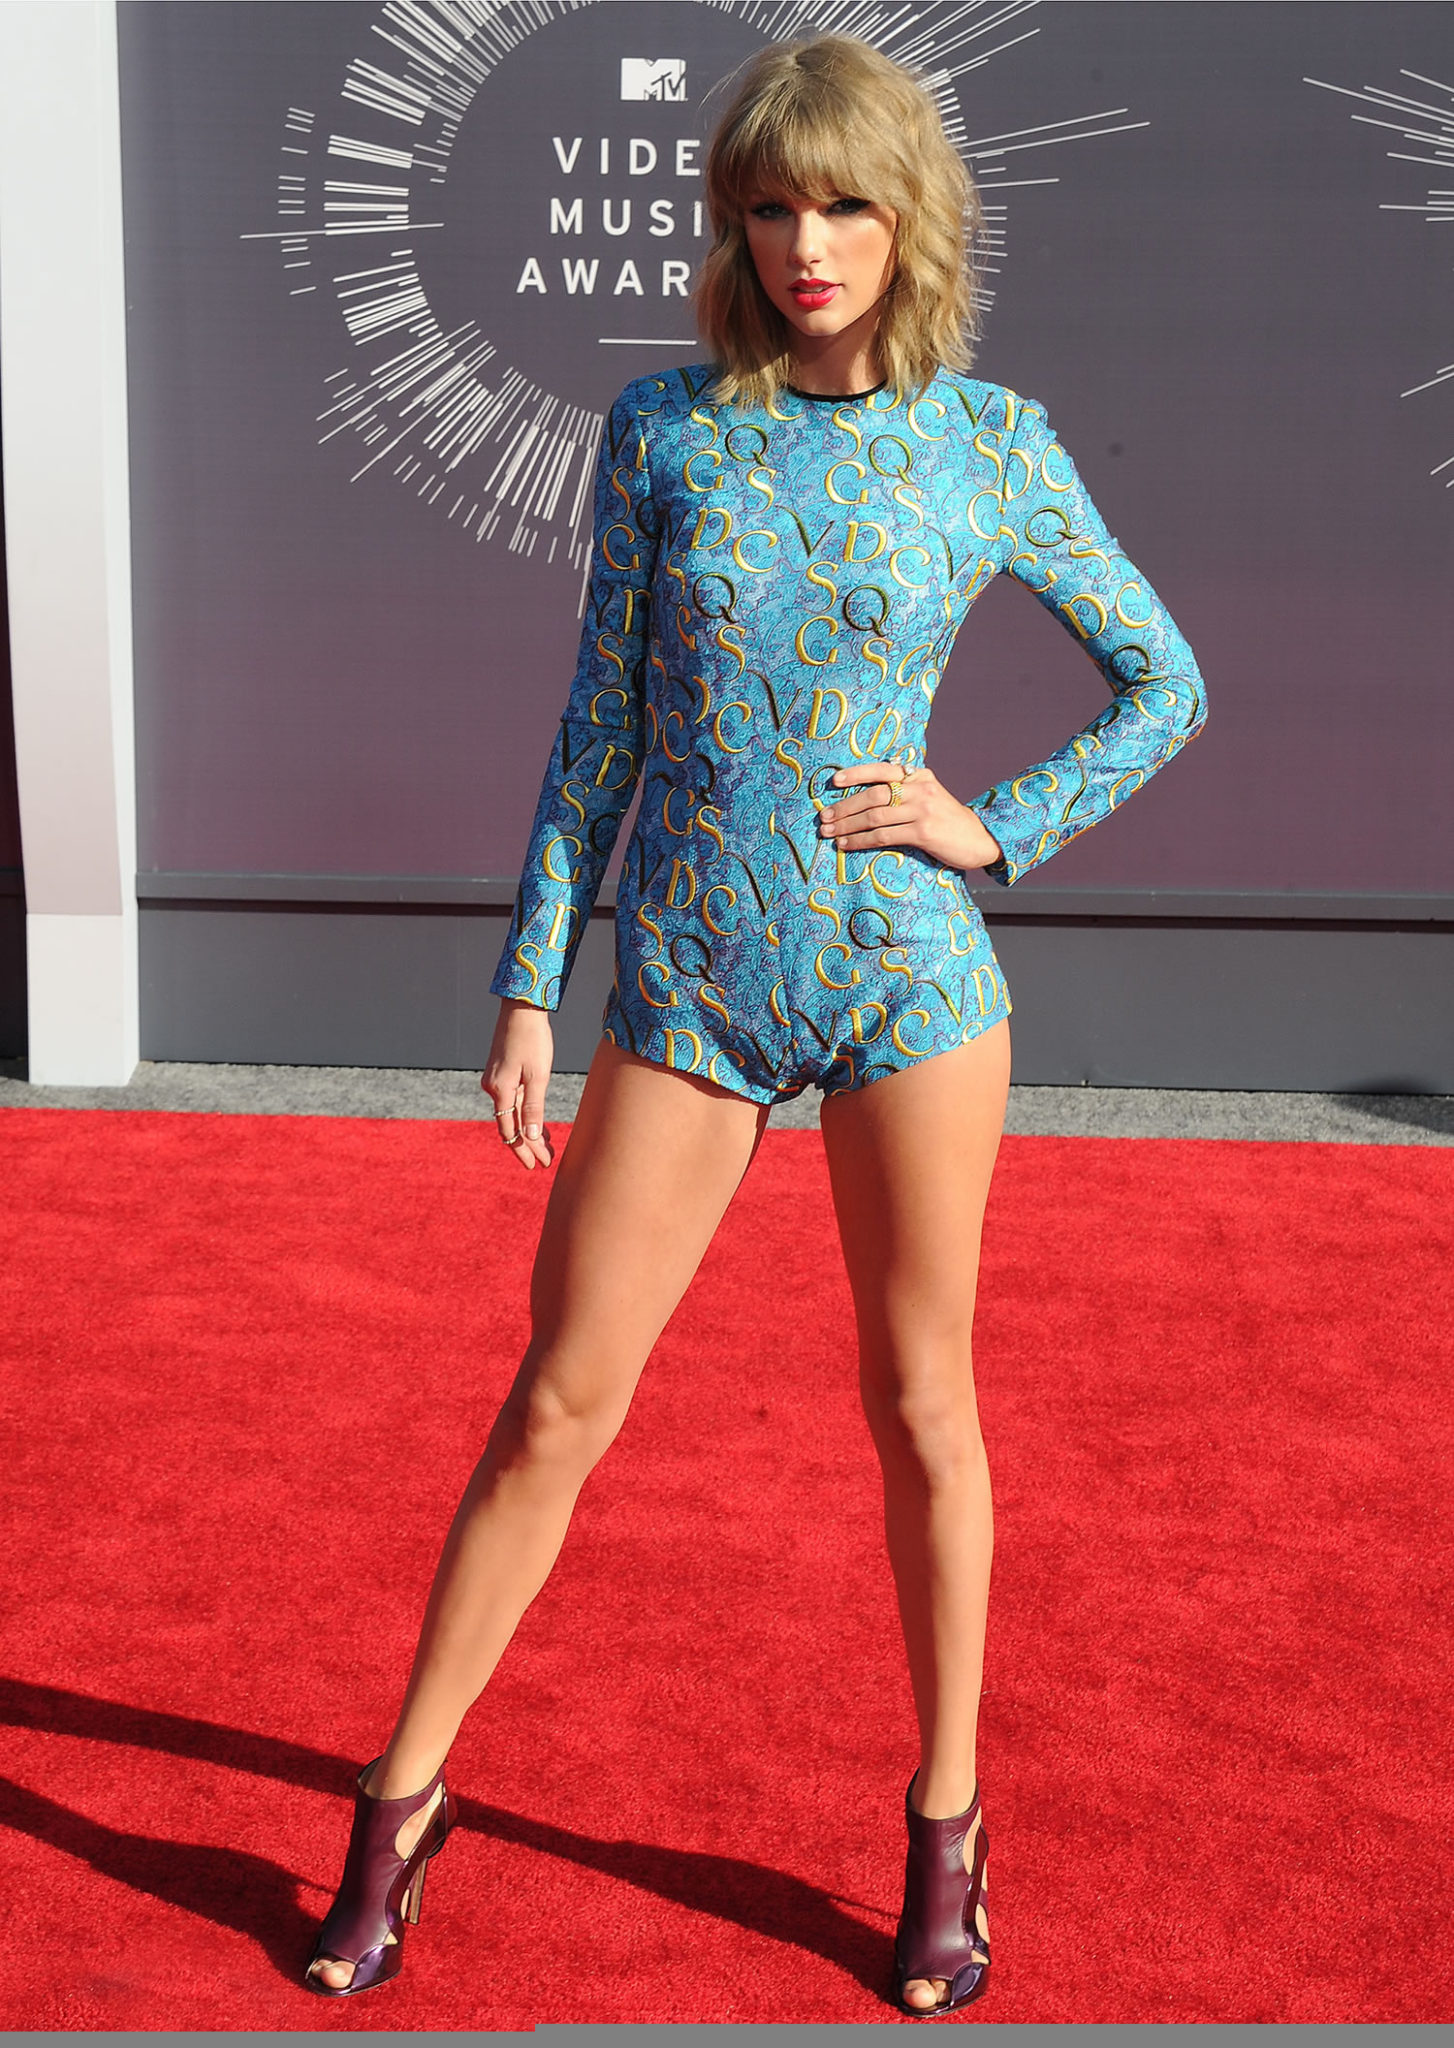 How To Get Legs Like Taylor Swift Thigh Gap Hack